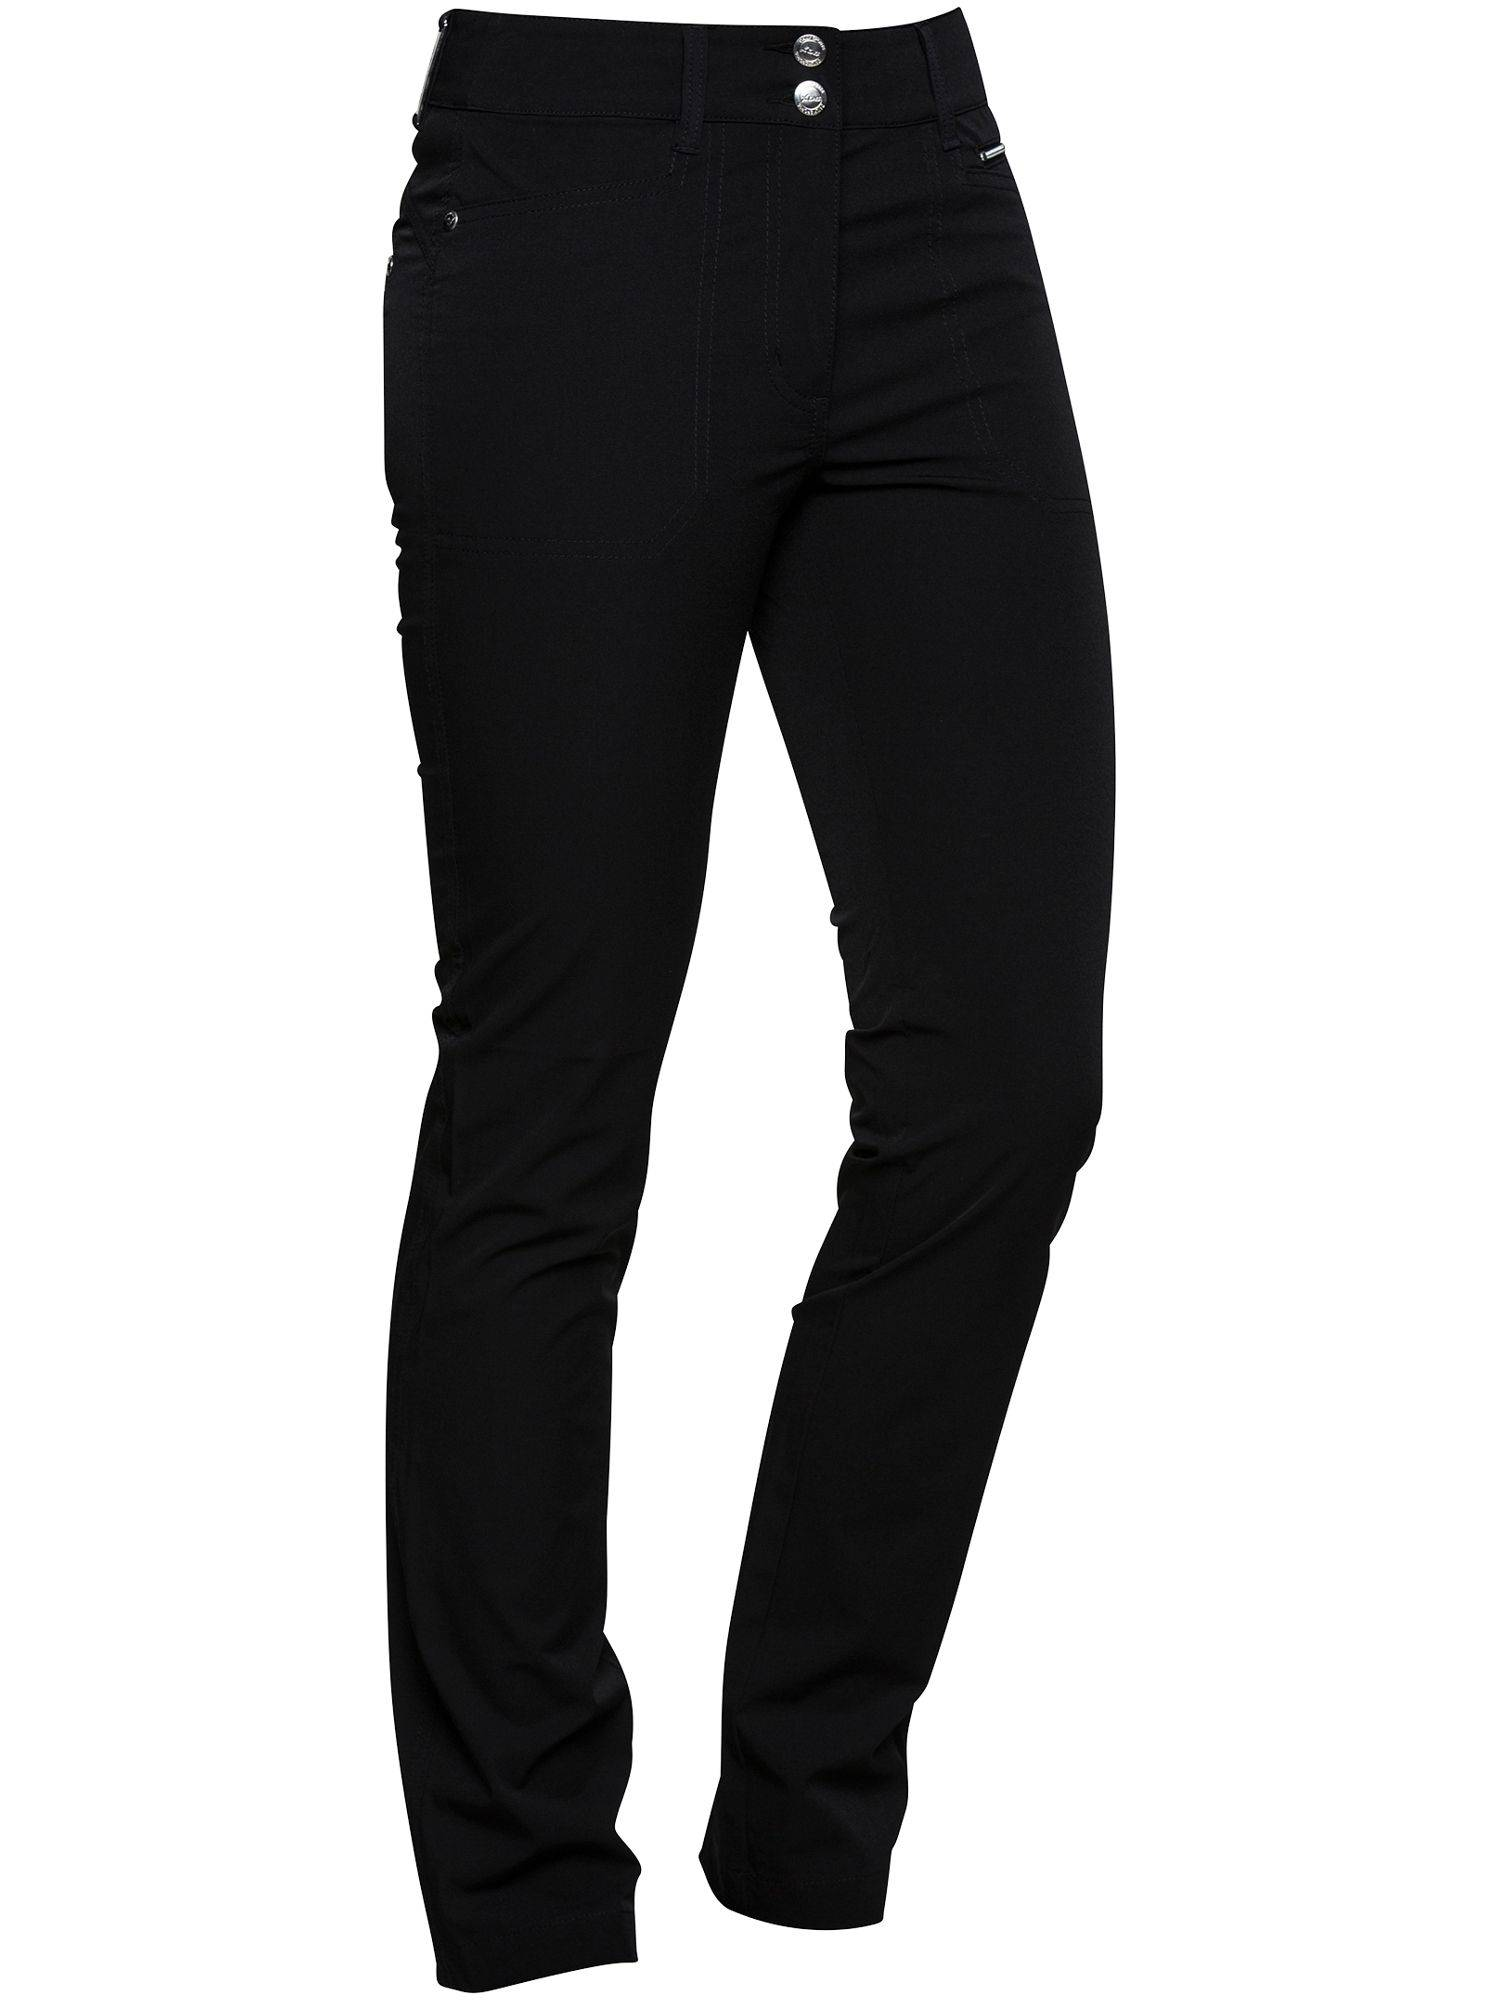 Daily Sports Miracle trousers (12R)